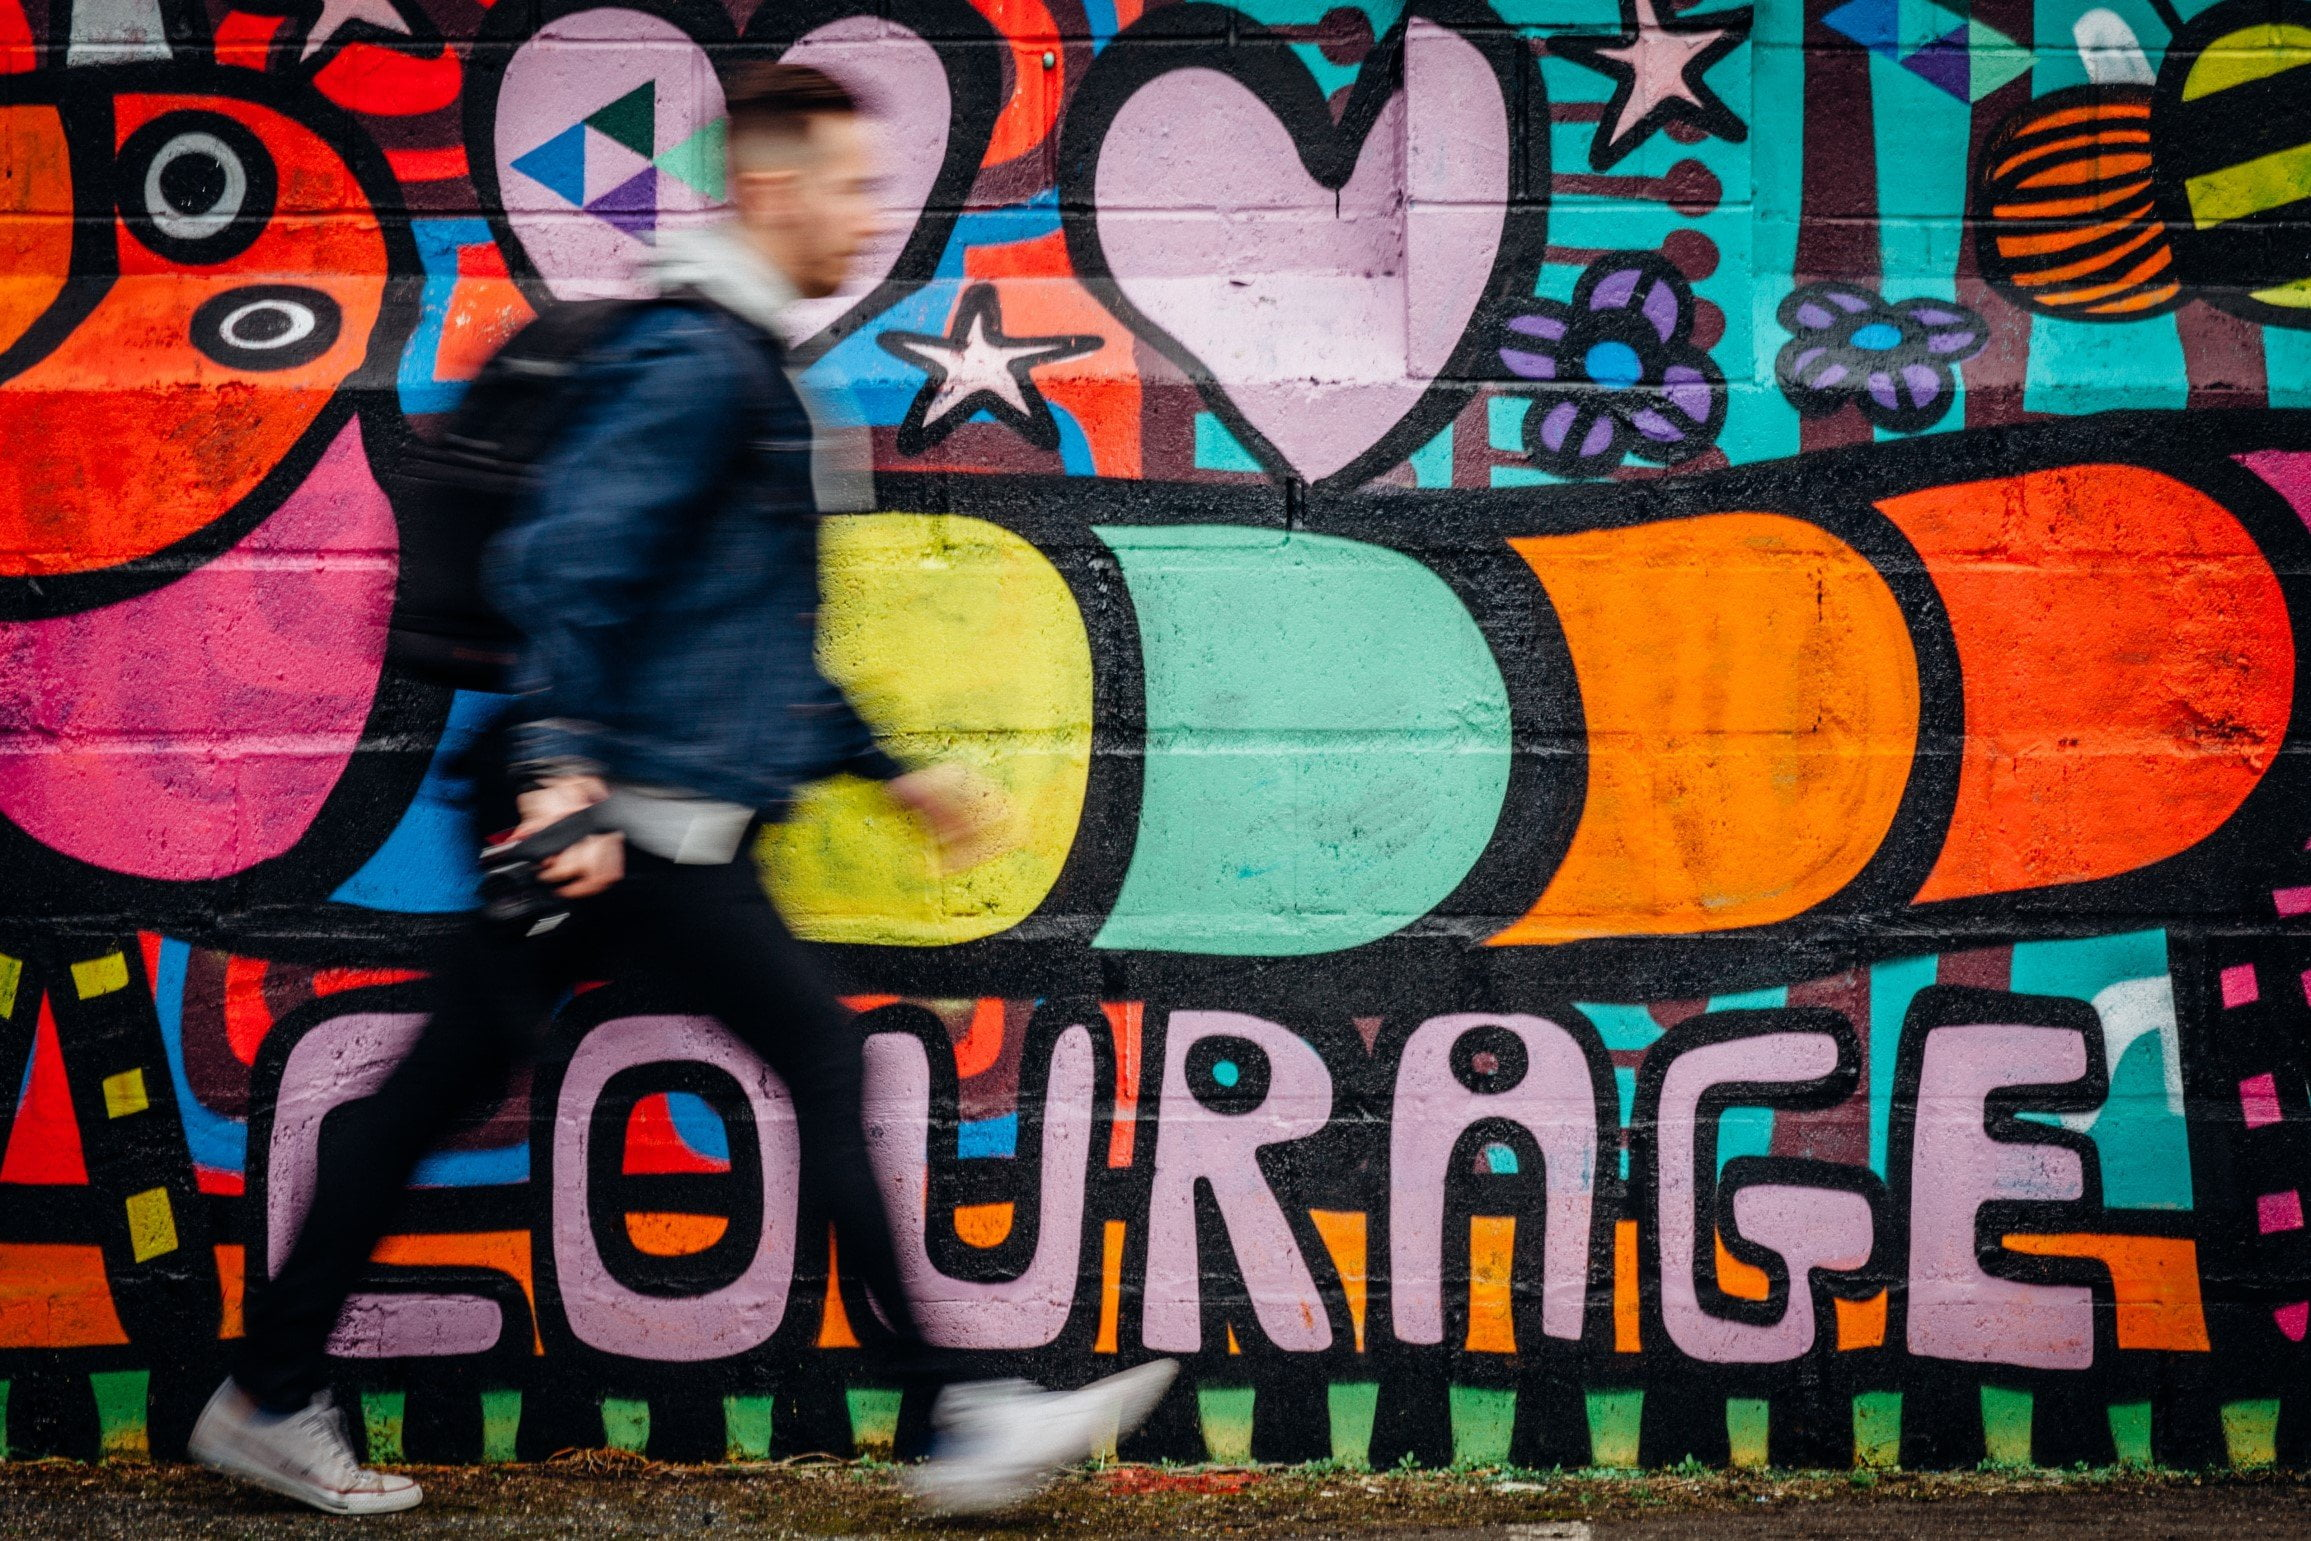 Man walking in front of graffiti that says courage